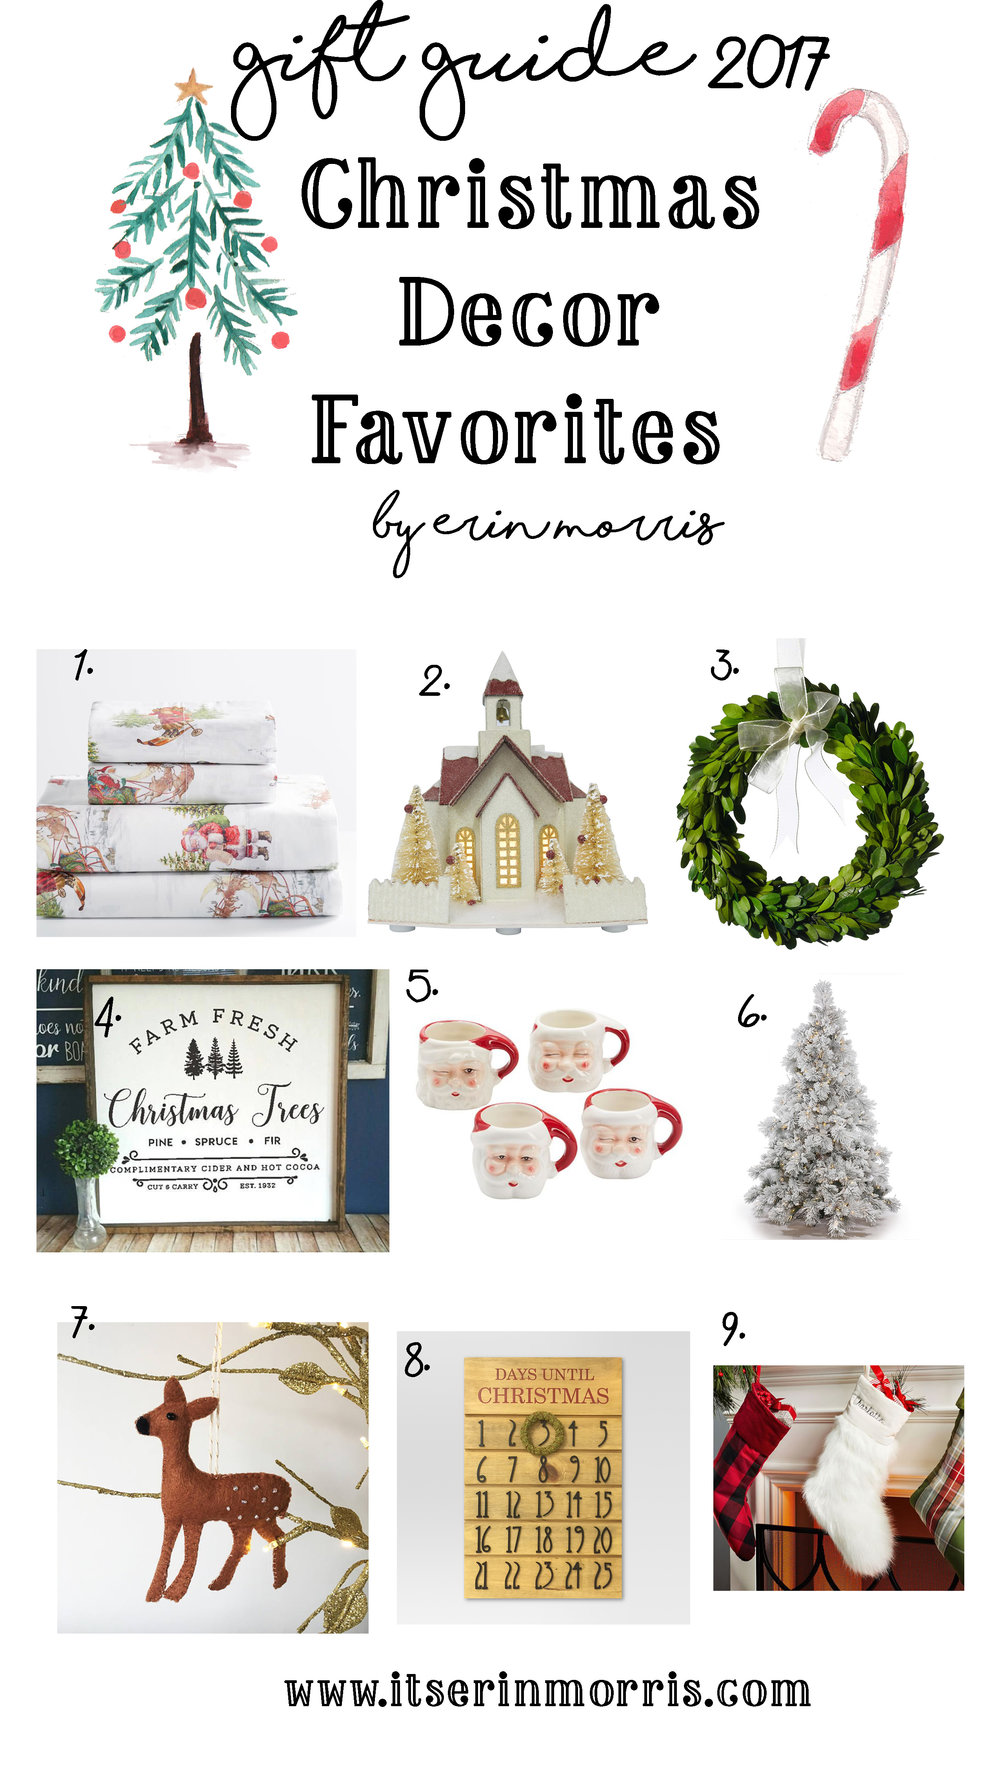 Christmas Decor Favorites.jpg